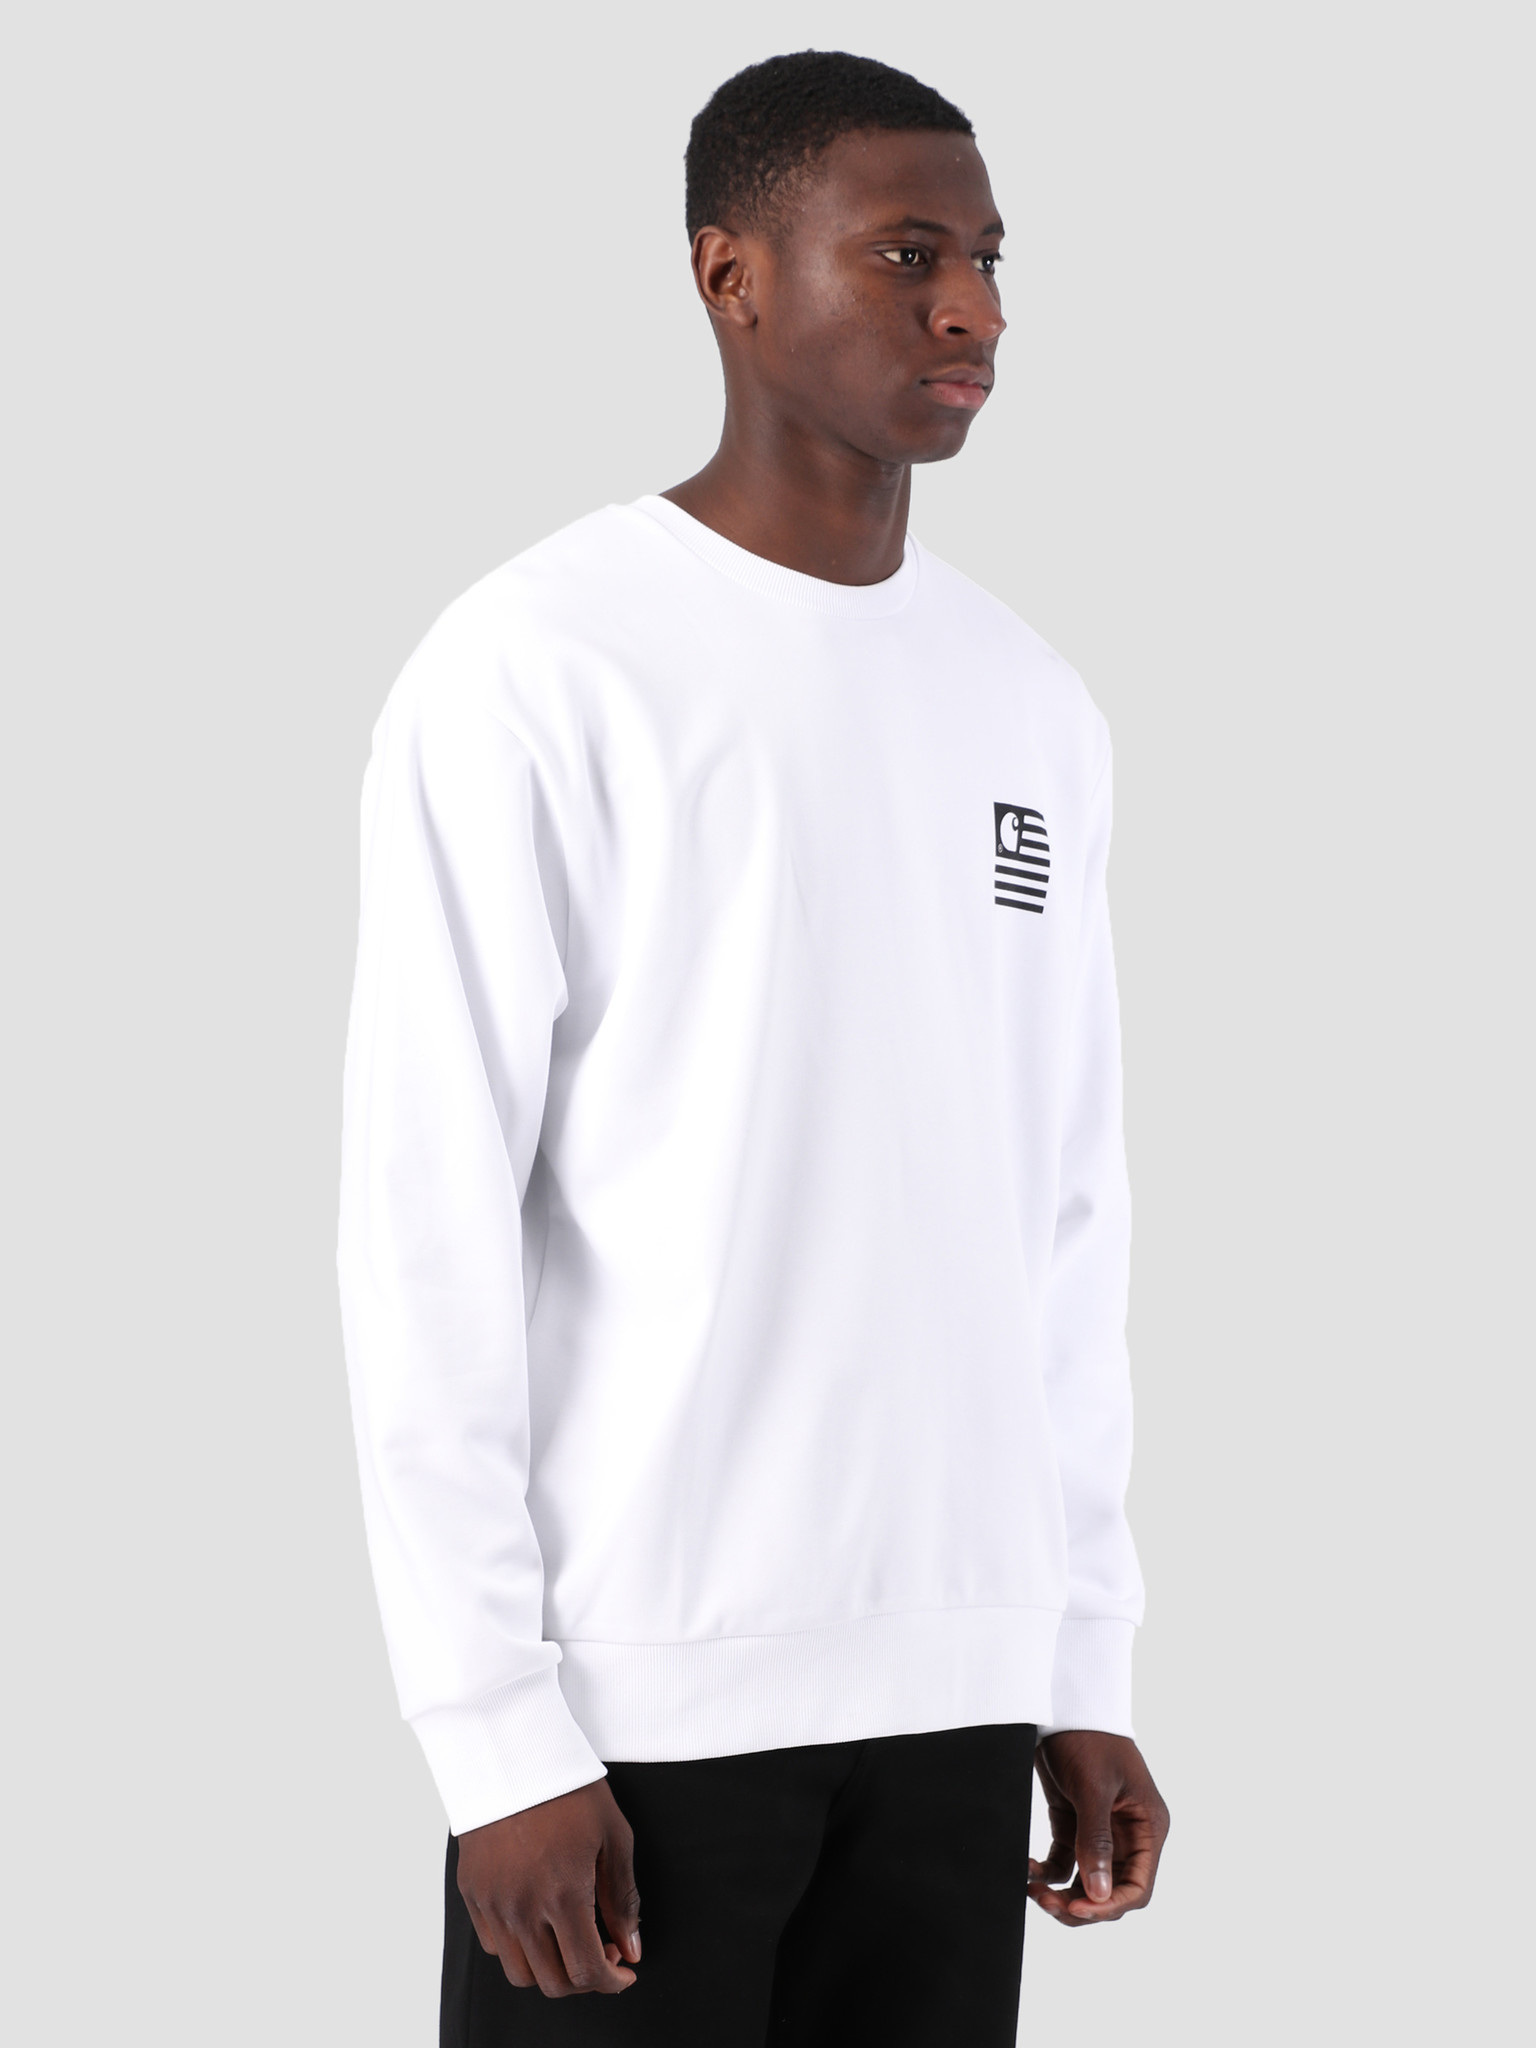 Carhartt WIP Carhartt WIP State Patch Sweat White I026347